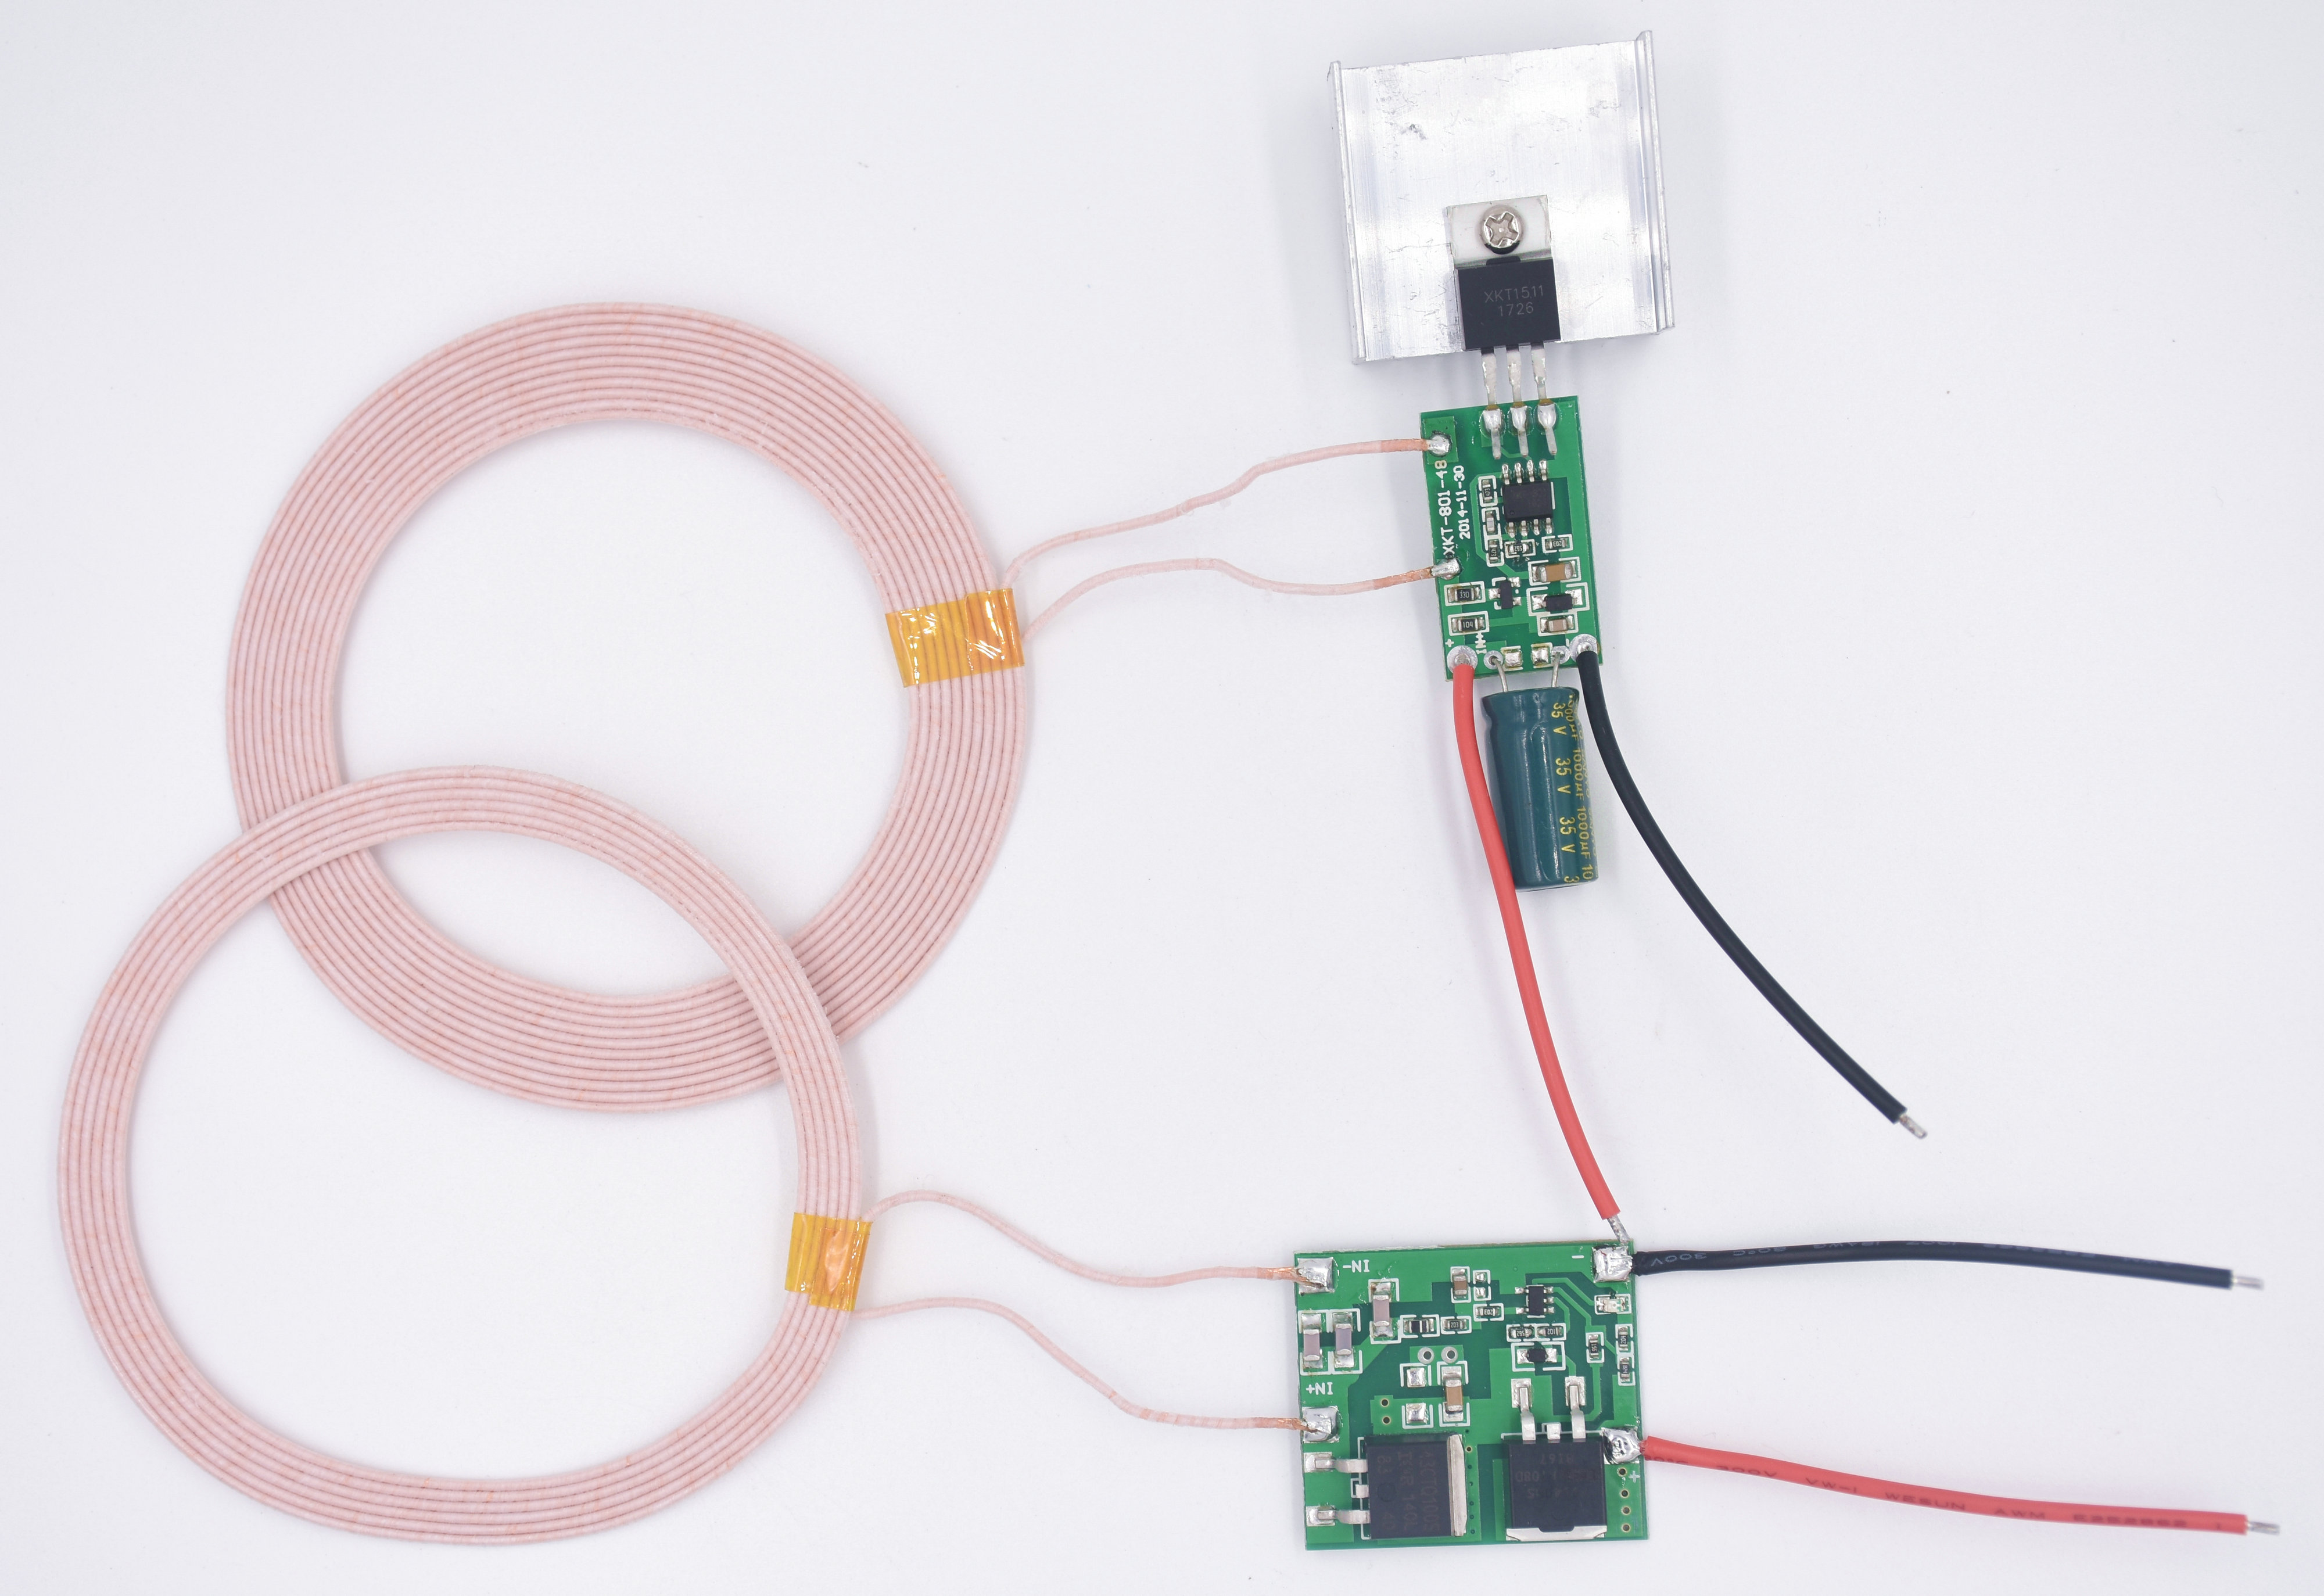 12V 3A Large Current Wireless Charging Module, Wireless Power Supply Module XKT801 29